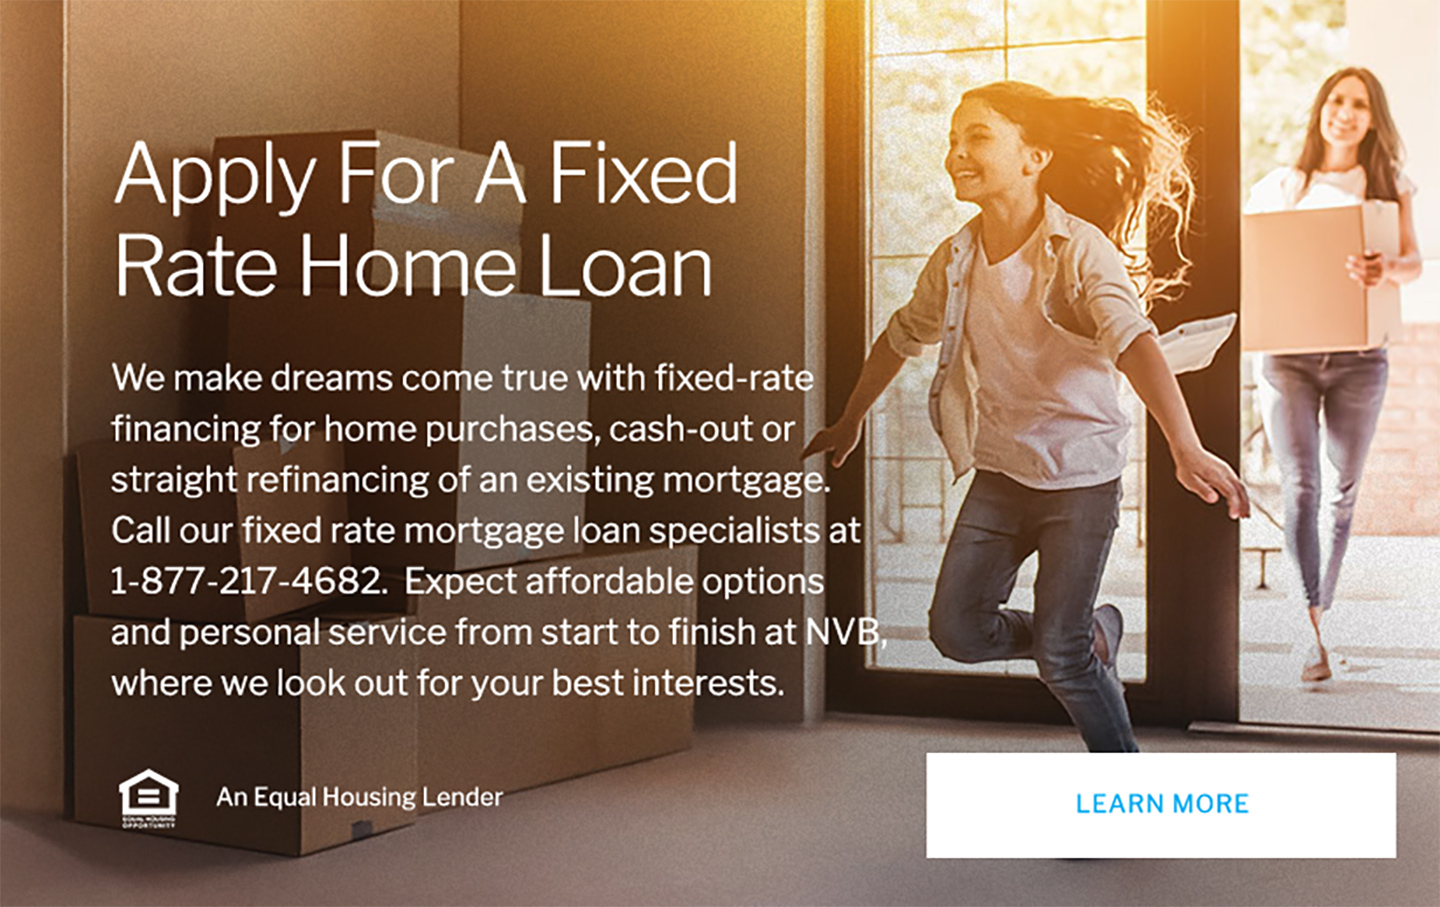 Apply For A Fixed Rate Home Loan